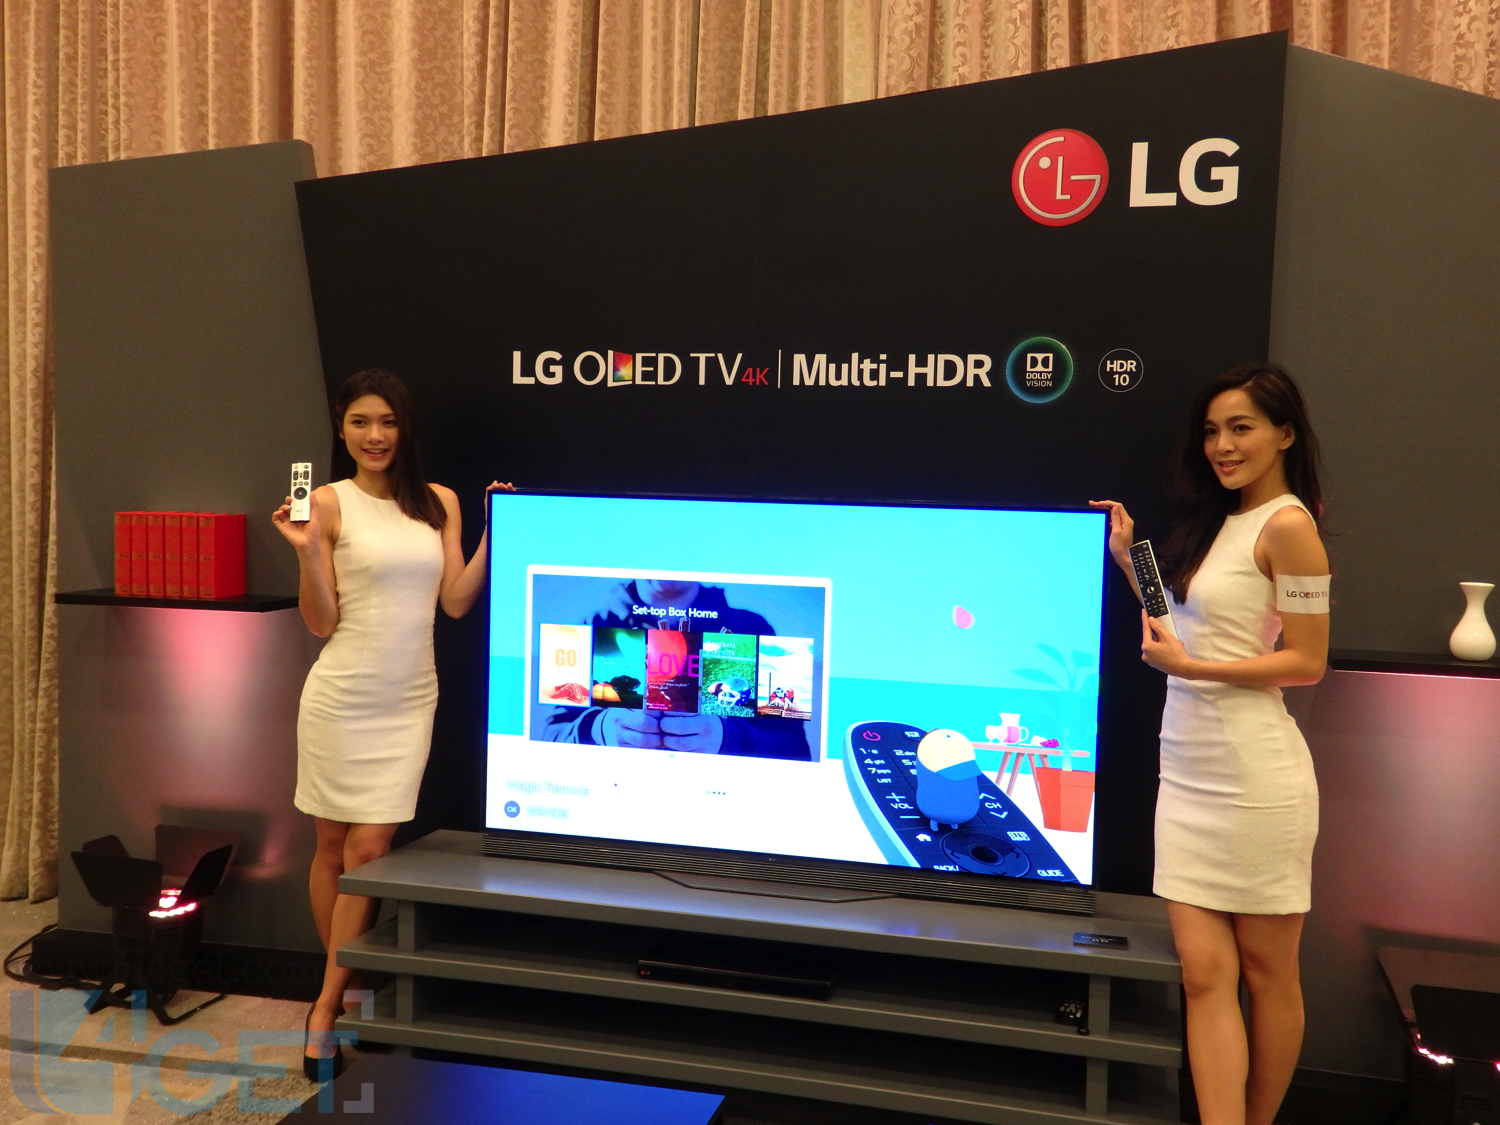 LG HDR 4K TV 現身 支援 HDR 10 / Dolby Vision 兩制式